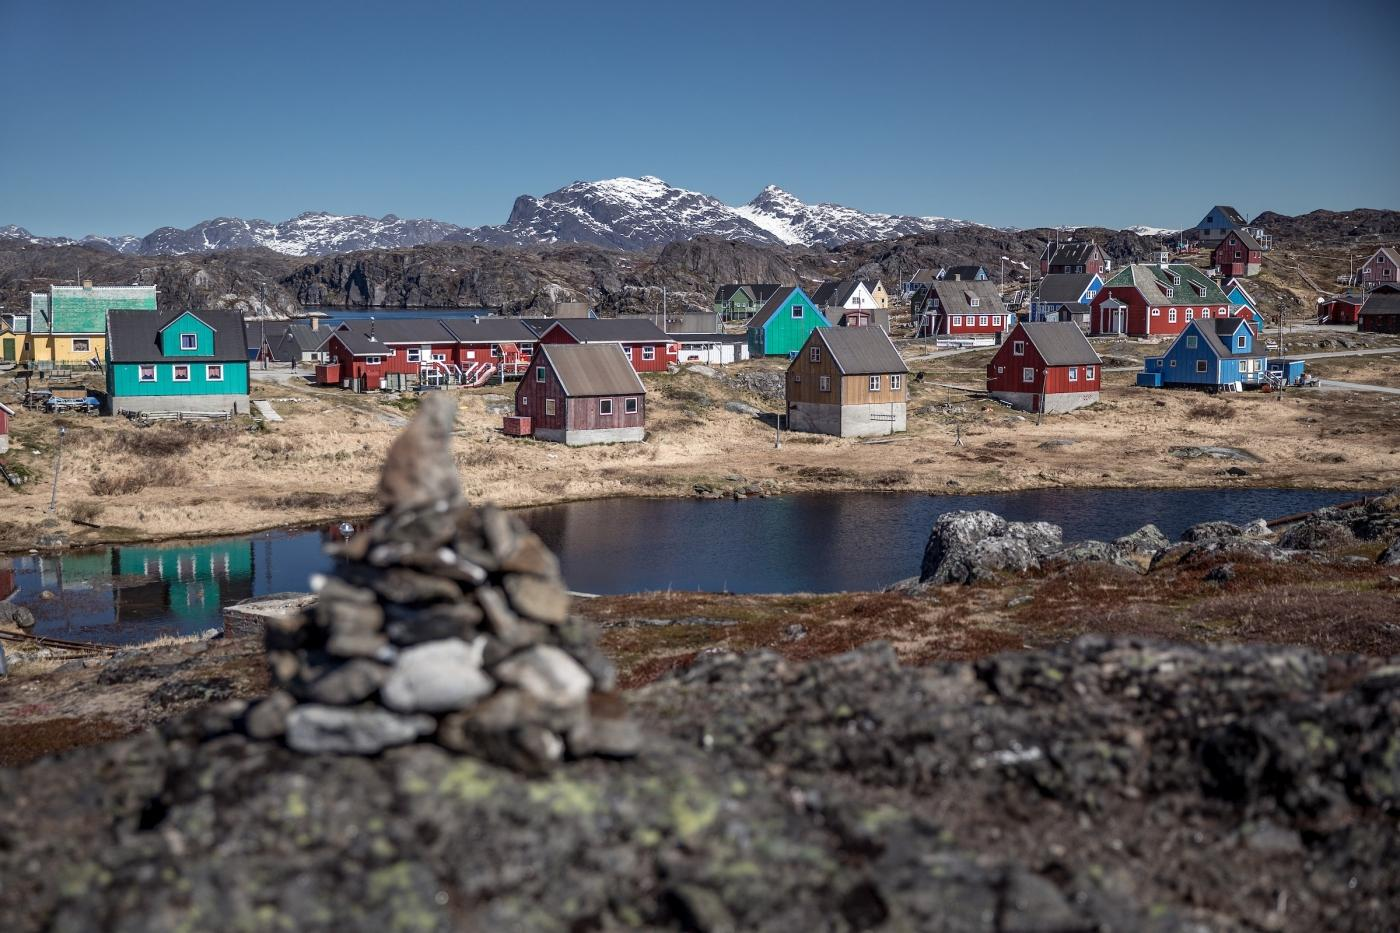 Qeqertarsuatsiaat is a village south of Nuuk in Greenland. Photo by Mads Pihl - Visit Greenland